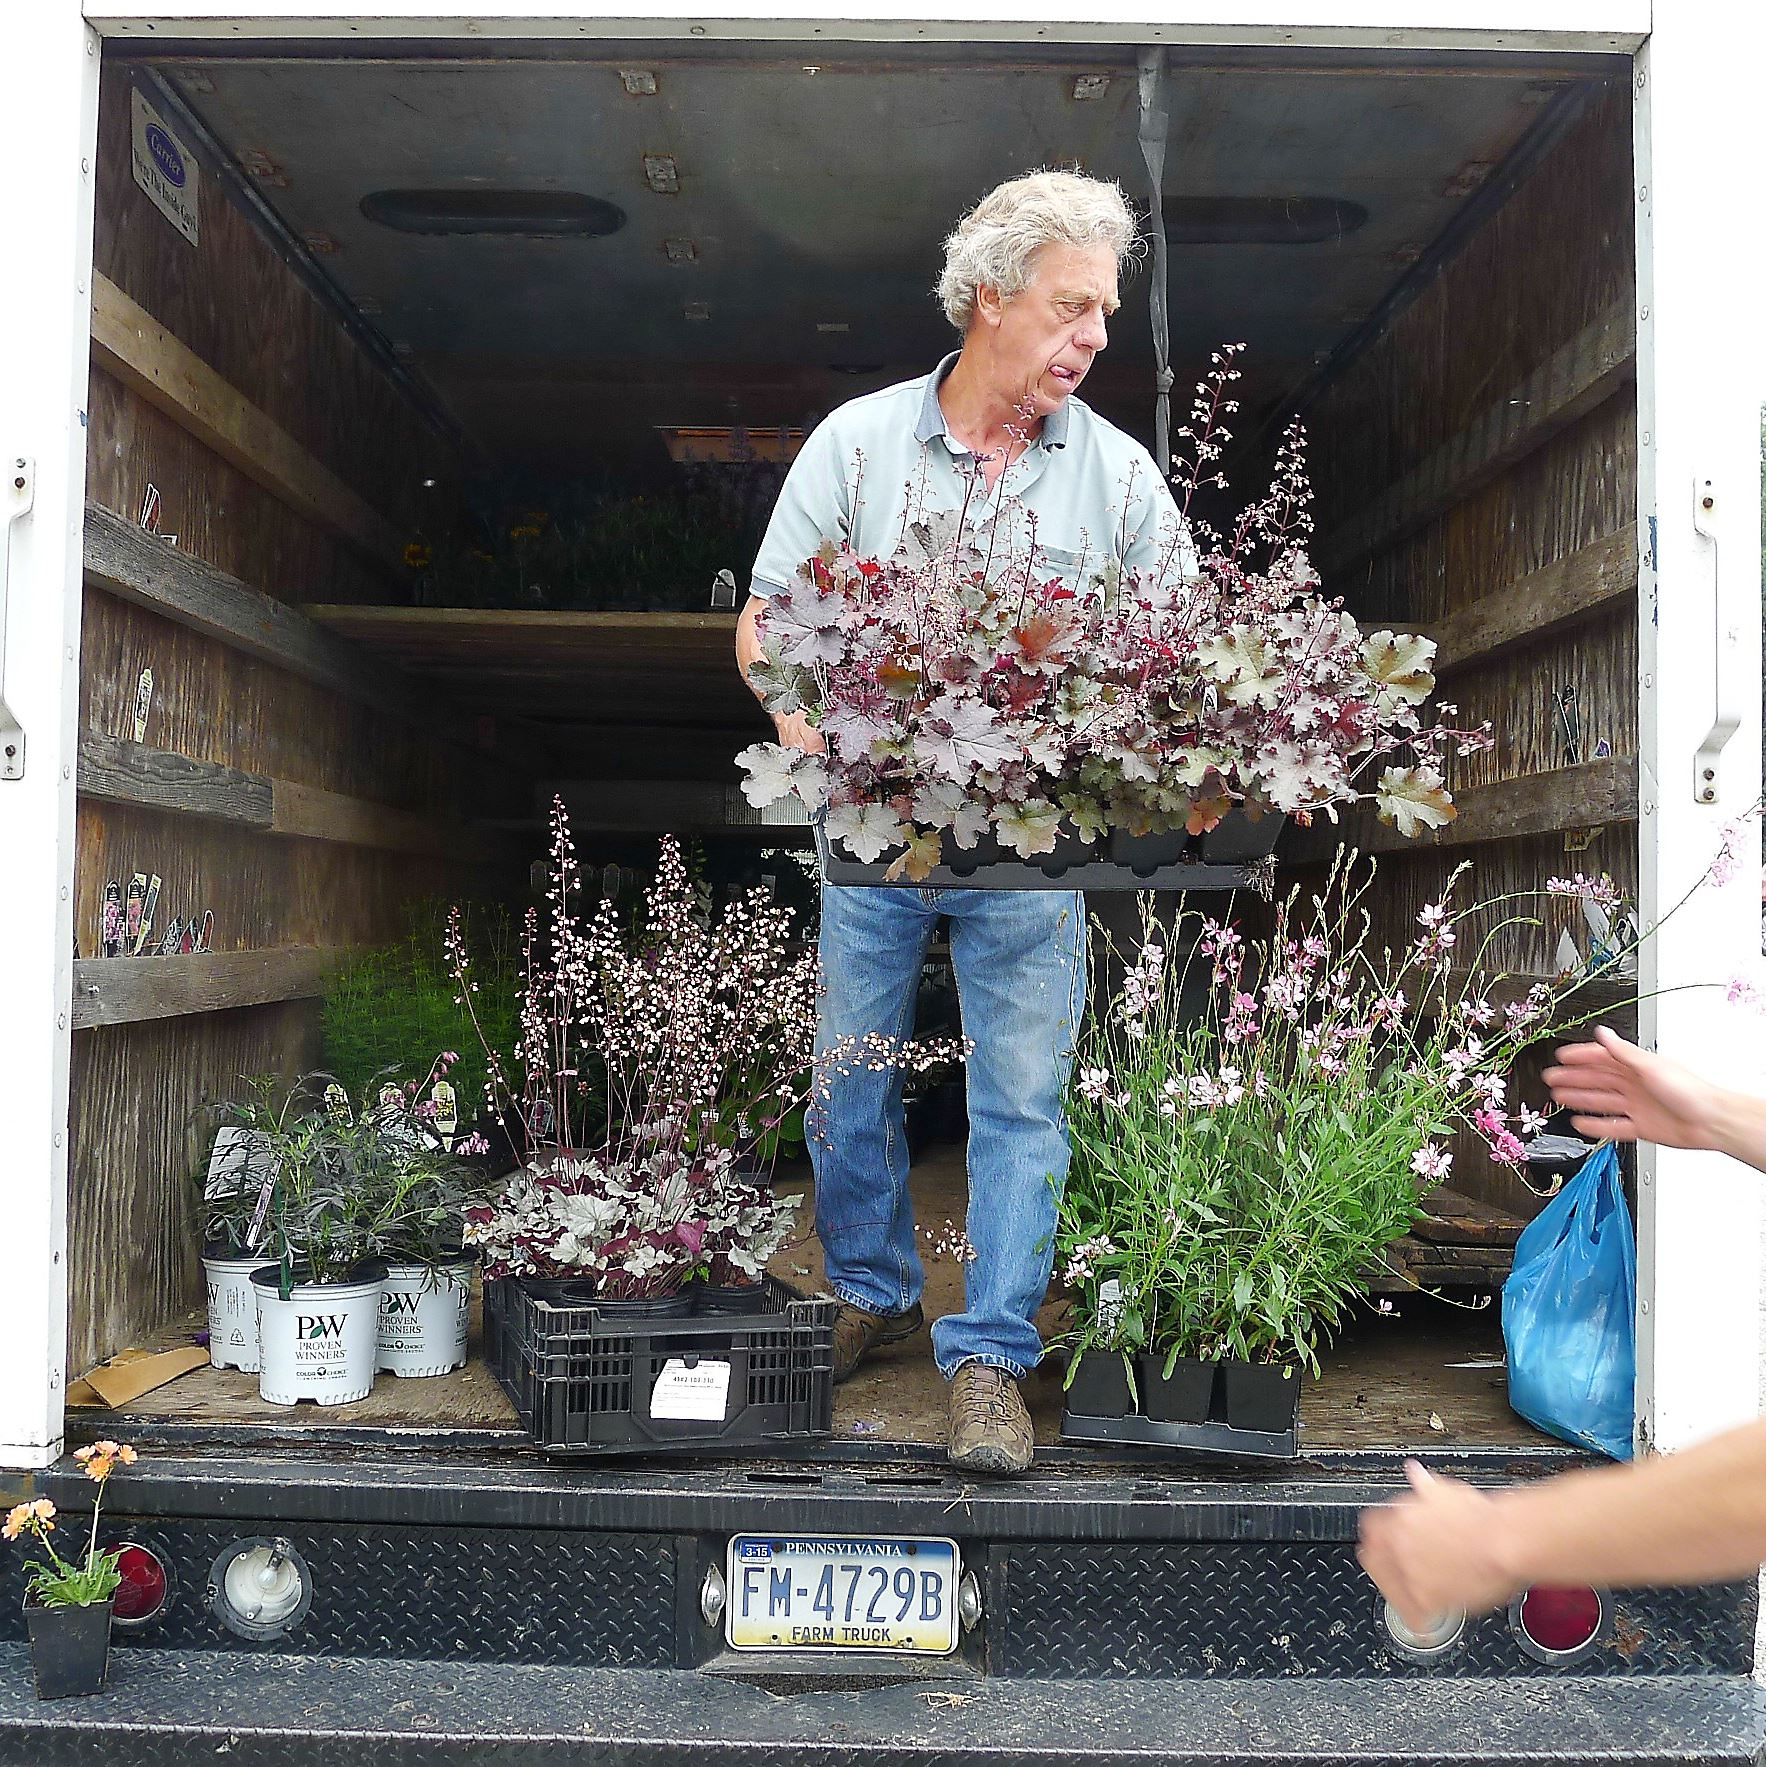 P1230772-5 Don Witt unloads his Witt's Perennial Nursery truck with the help of his son, Ryan, at the opening day at the Upper St. Clair Farmers Market on May 29.